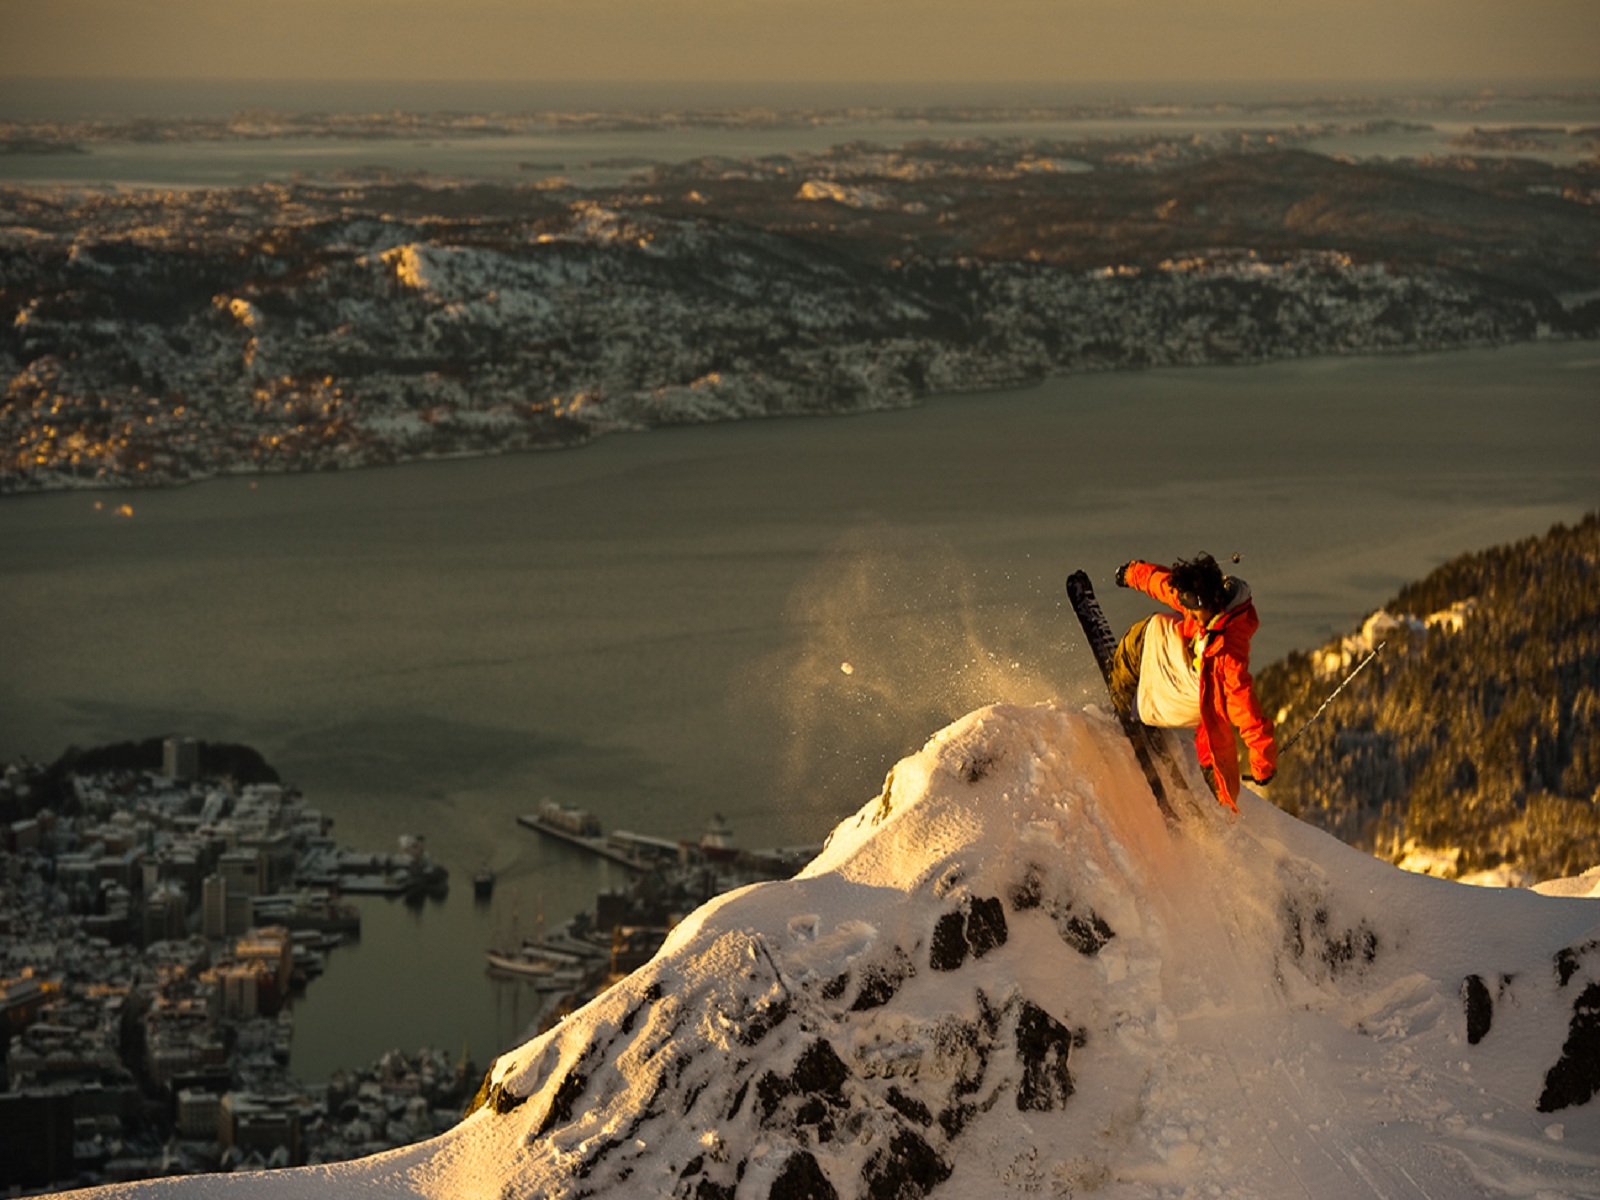 Extreme Hd Wallpapers: HD Sport Wallpapers: Extreme Sports